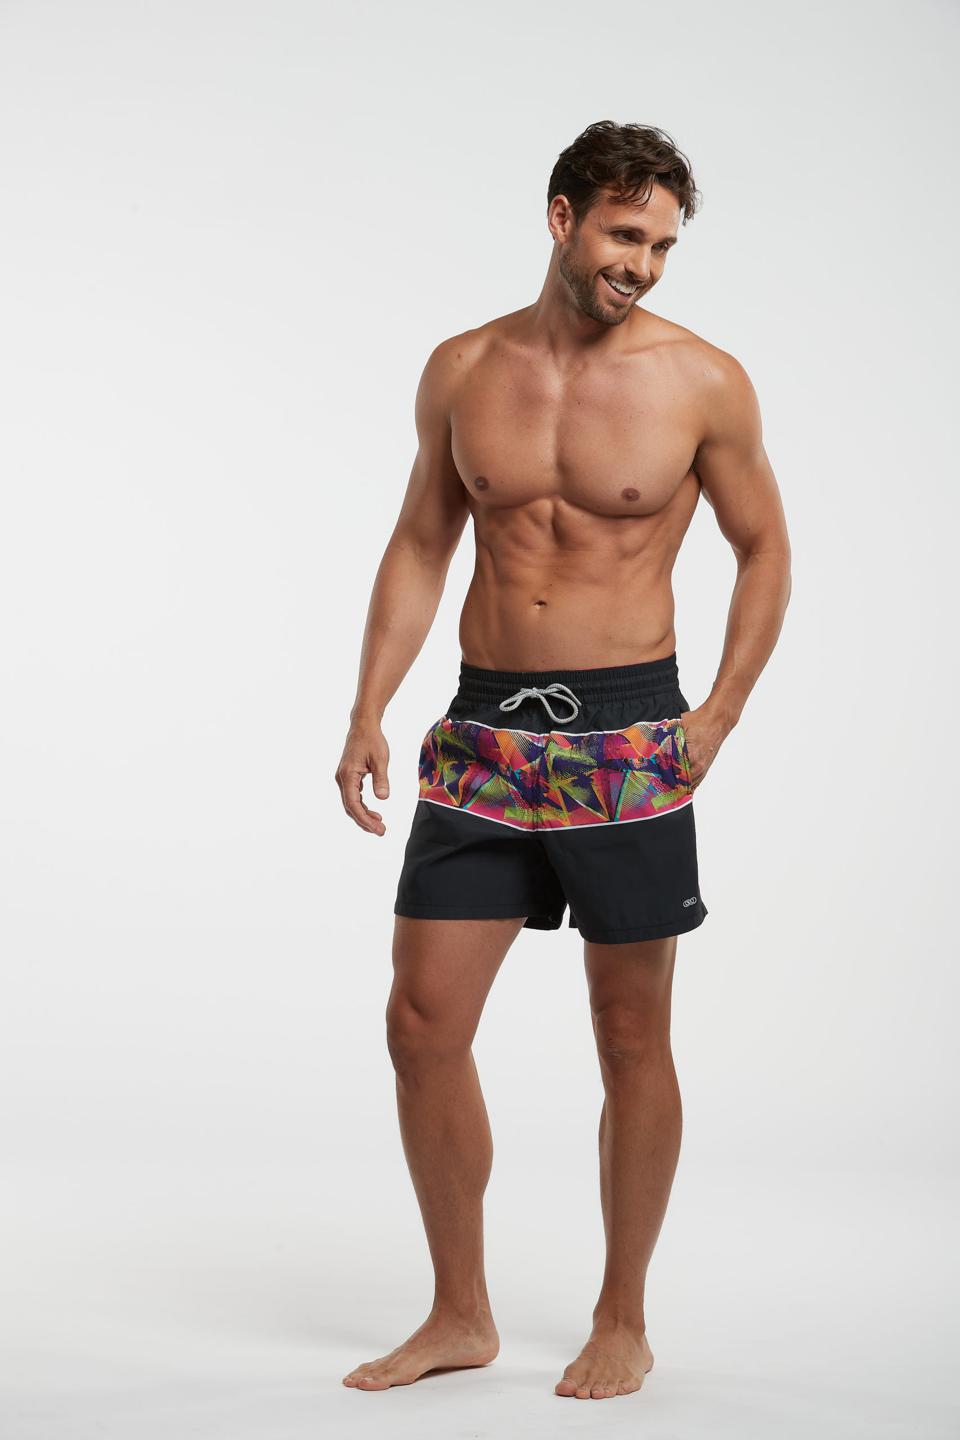 Taking a cue from the coolest men's runway shows for Spring Summer 2020, the Neo Swim trunk from Le Club plays with vibrant neon colors, making sure you stand out from the rest of the crowd.